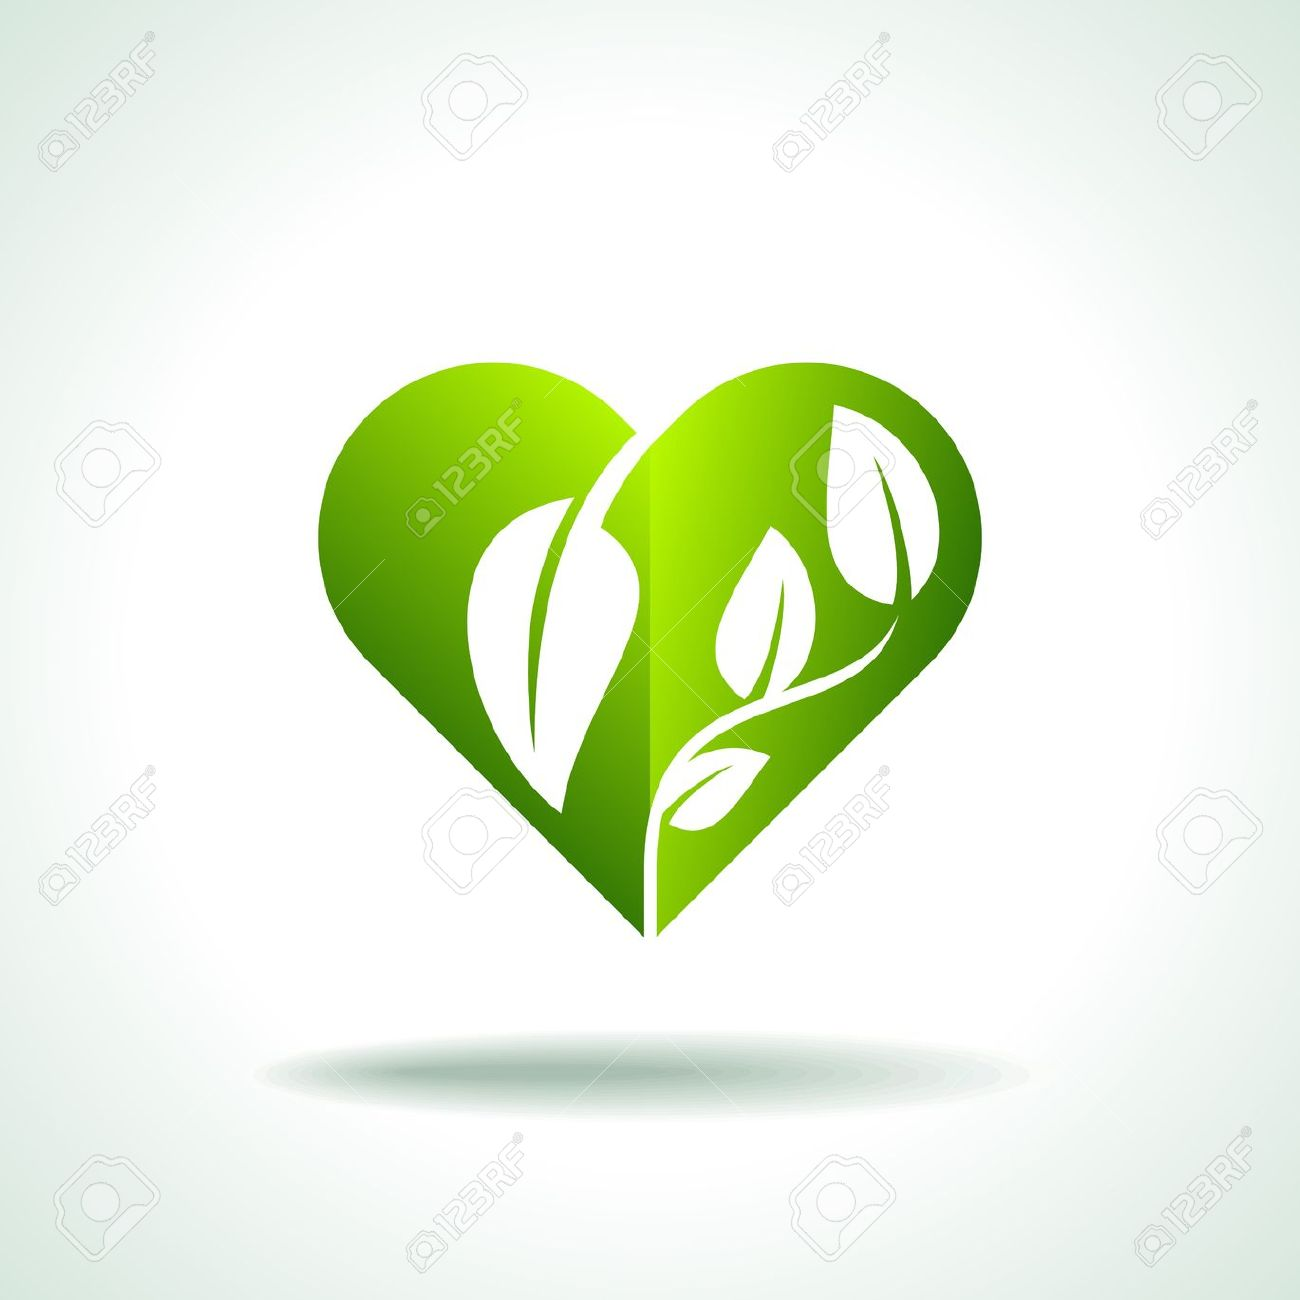 Eco Friendly Concept Heart Leaf Shape Royalty Free Cliparts.